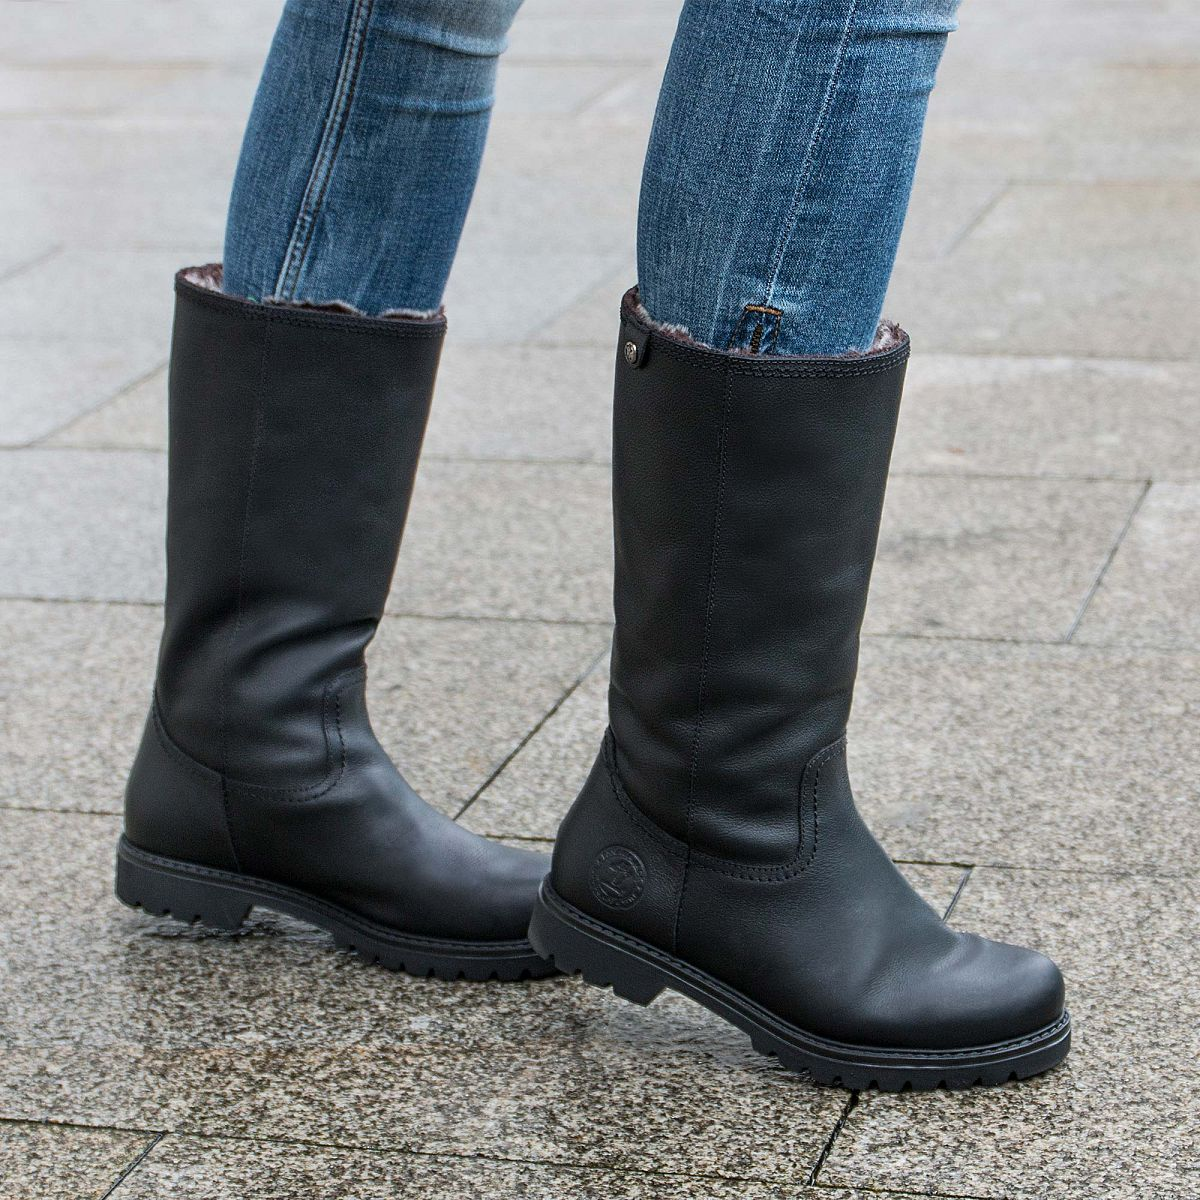 8c70a5c23b08 Women s boot BAMBINA black